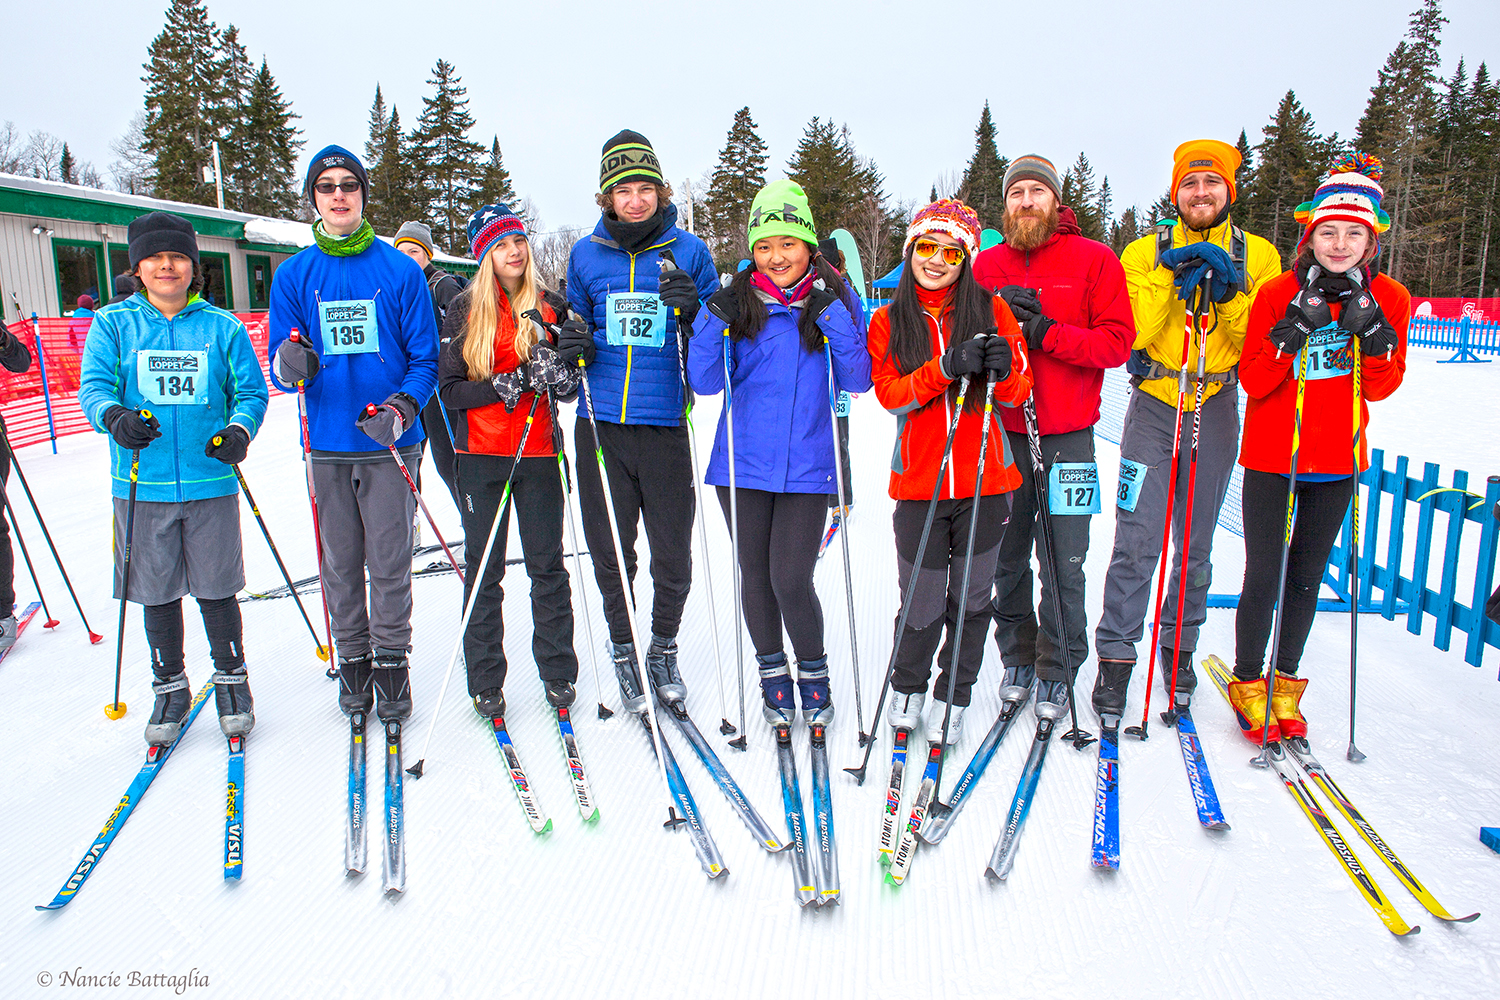 ▲ North Country School at the 2015 Lake Placid Loppet, a citizens endurance nordic ski race.  © Nancie Battaglia